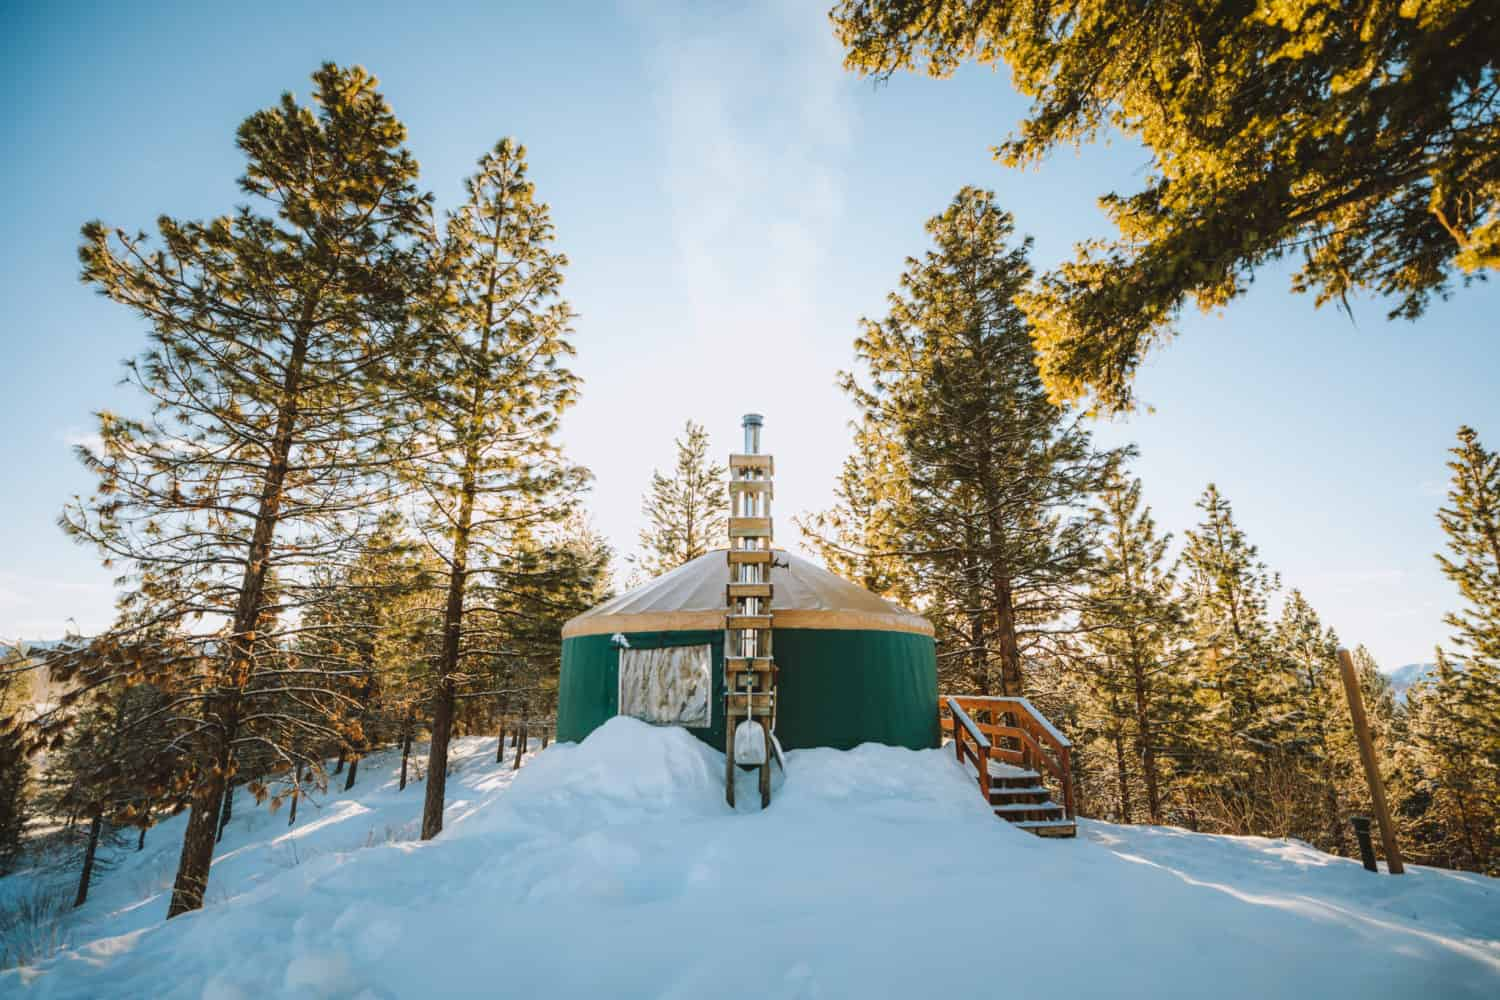 Idaho Backcountry Yurt - Skyline Yurt (TheMandagies.com)